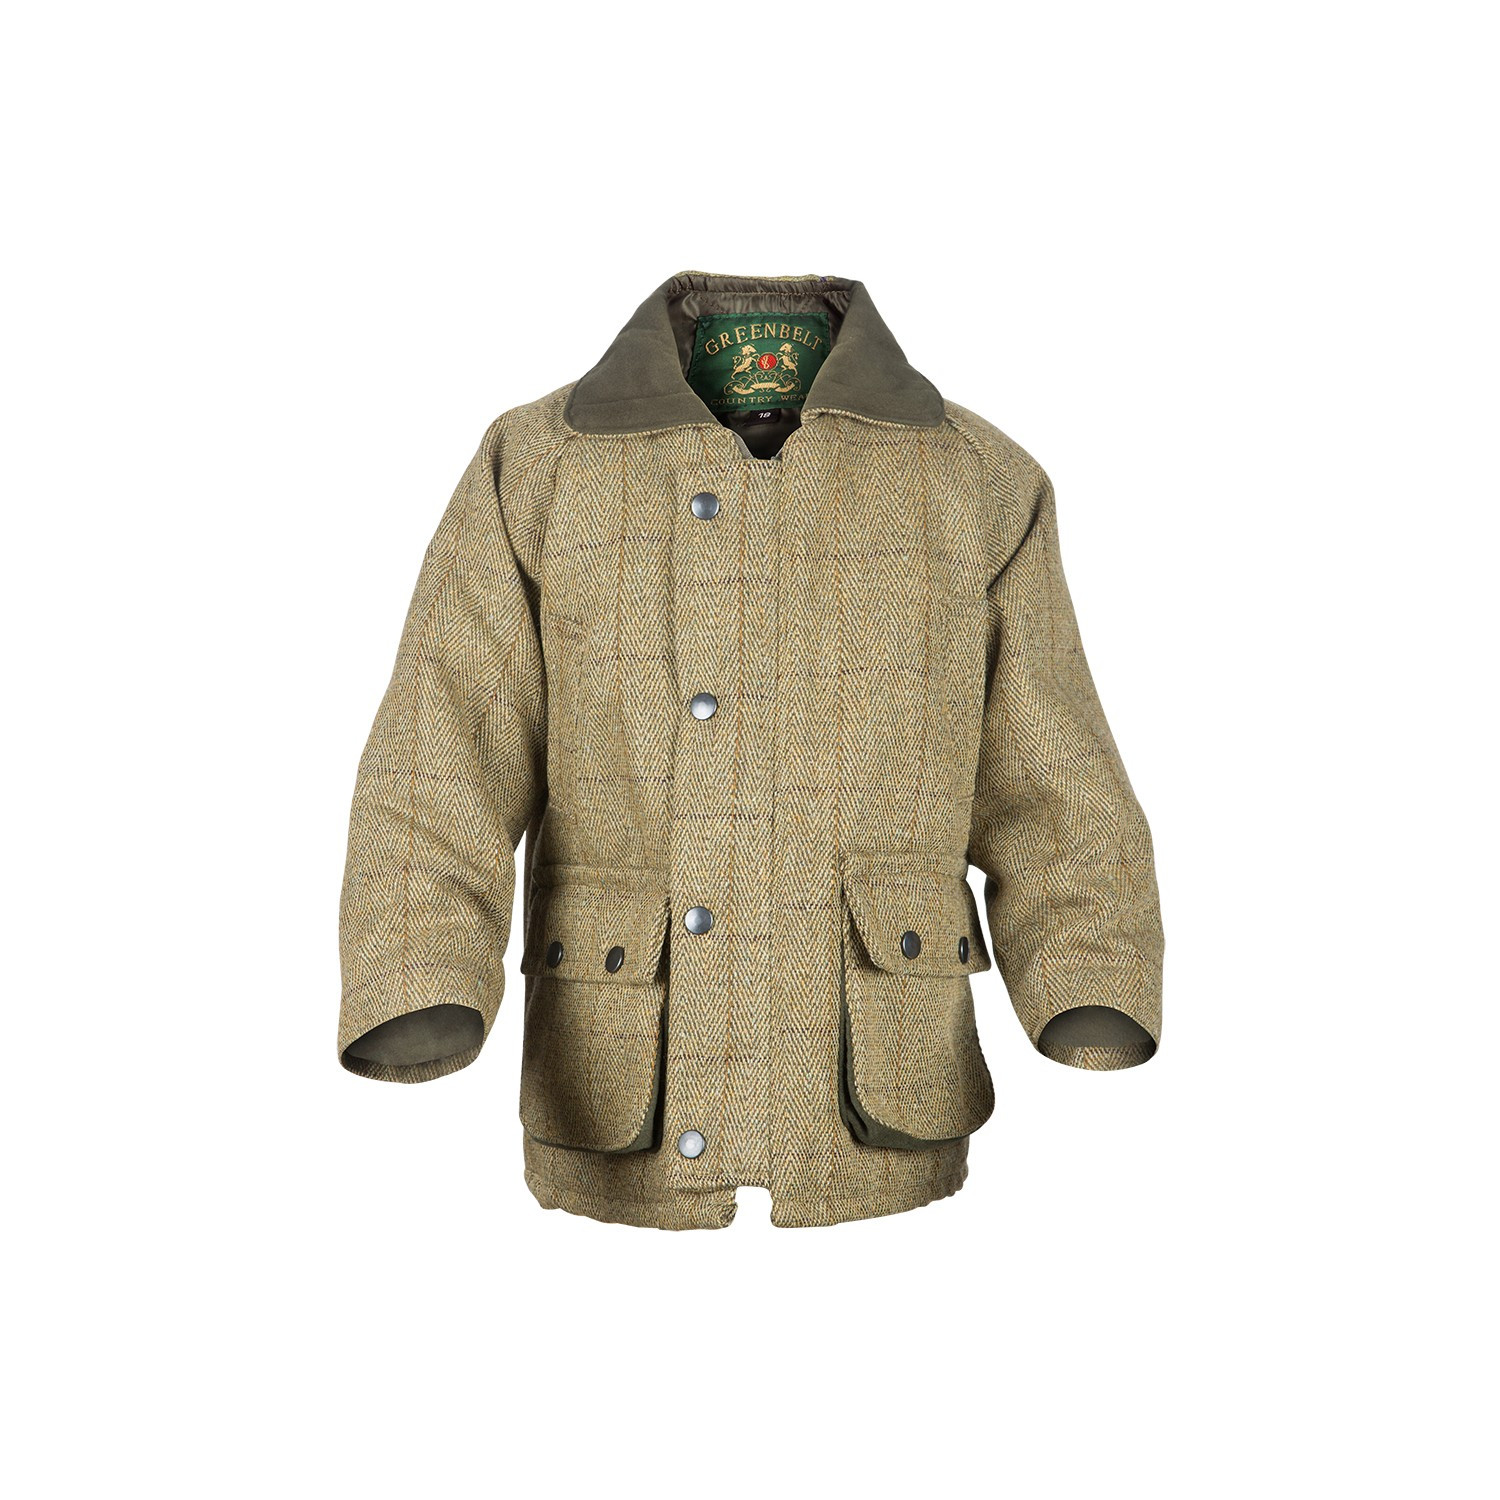 Manteau enfant tweed clair